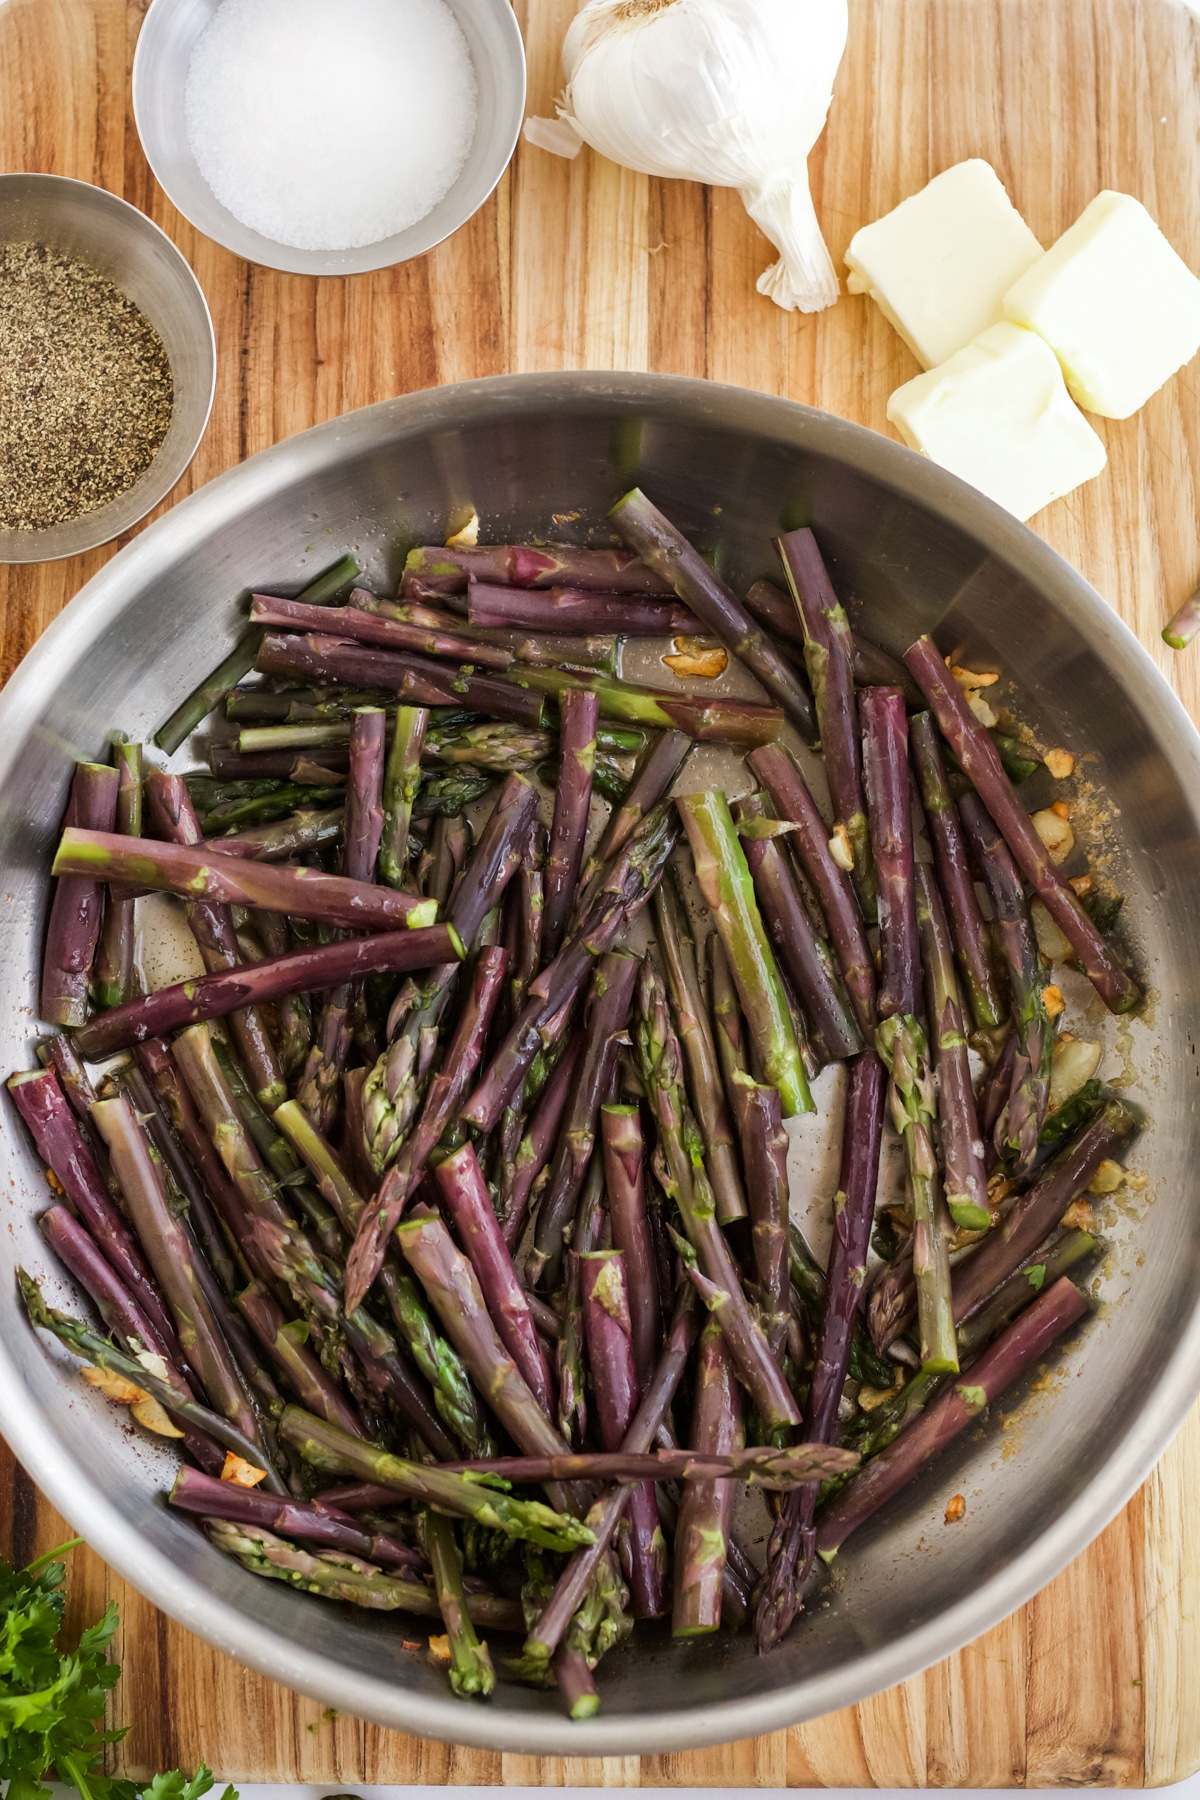 purple asparagus stalks in a skillet on a wooden board with other ingredients